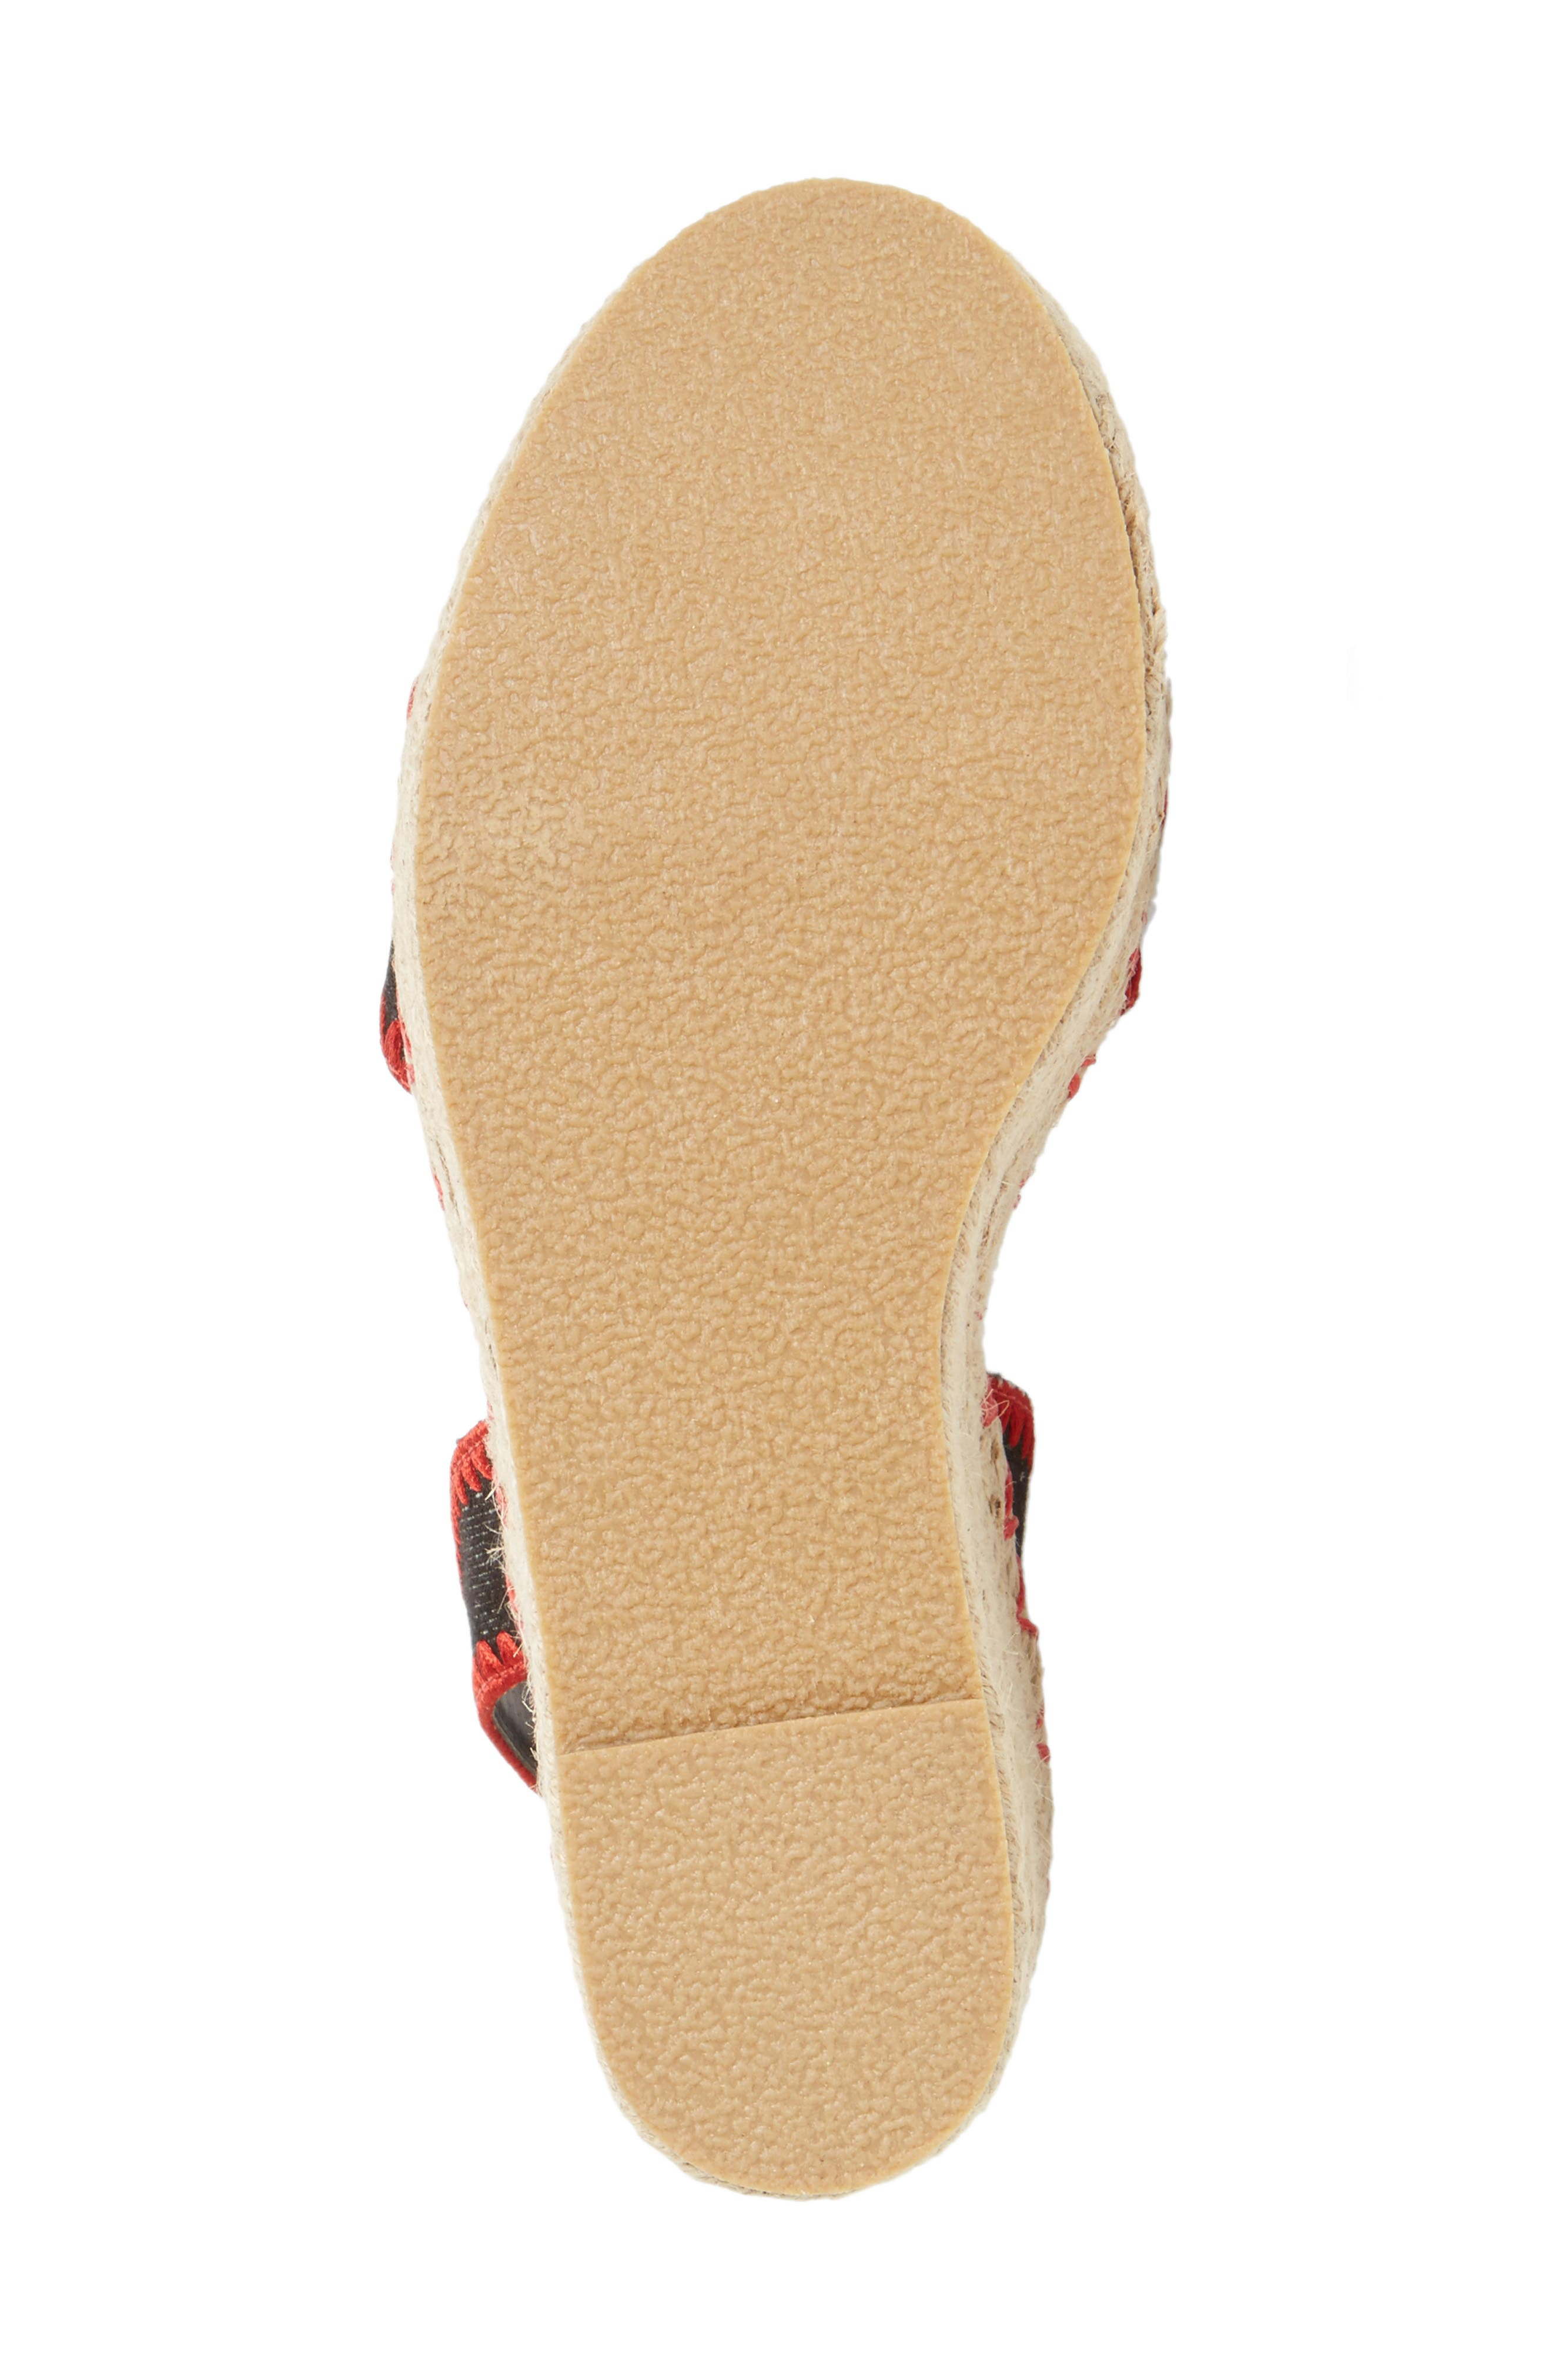 Coconuts by Matisse Frenchie Wedge Sandal,                             Alternate thumbnail 4, color,                             Black Fabric